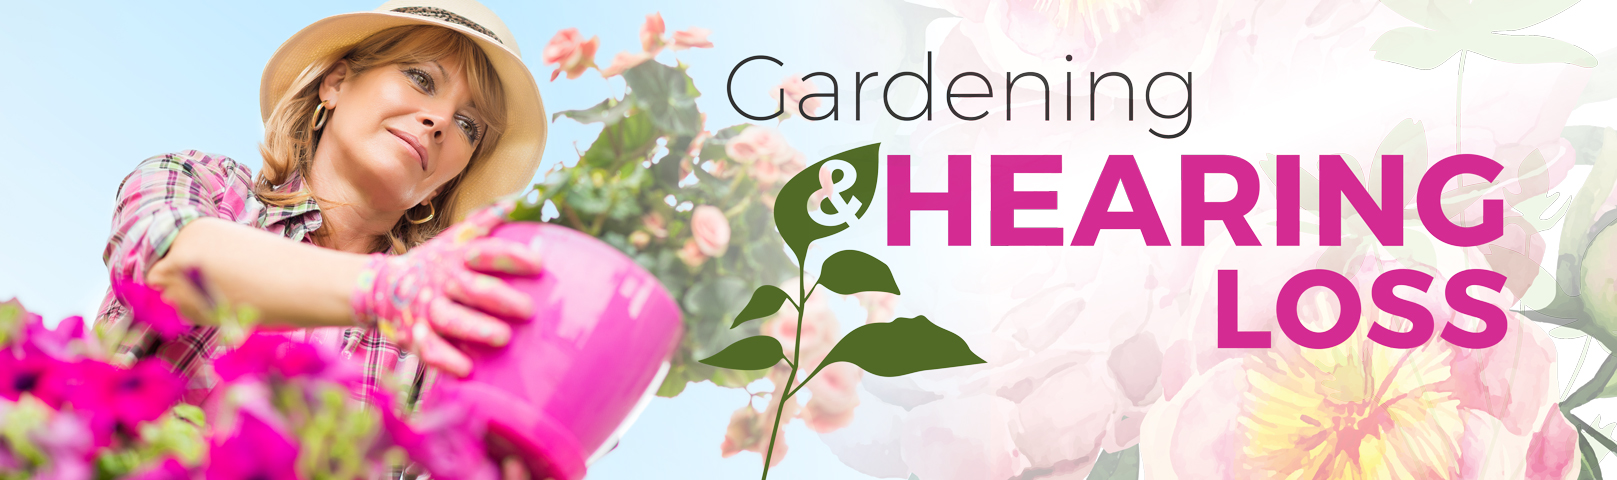 Gardening and hearing loss